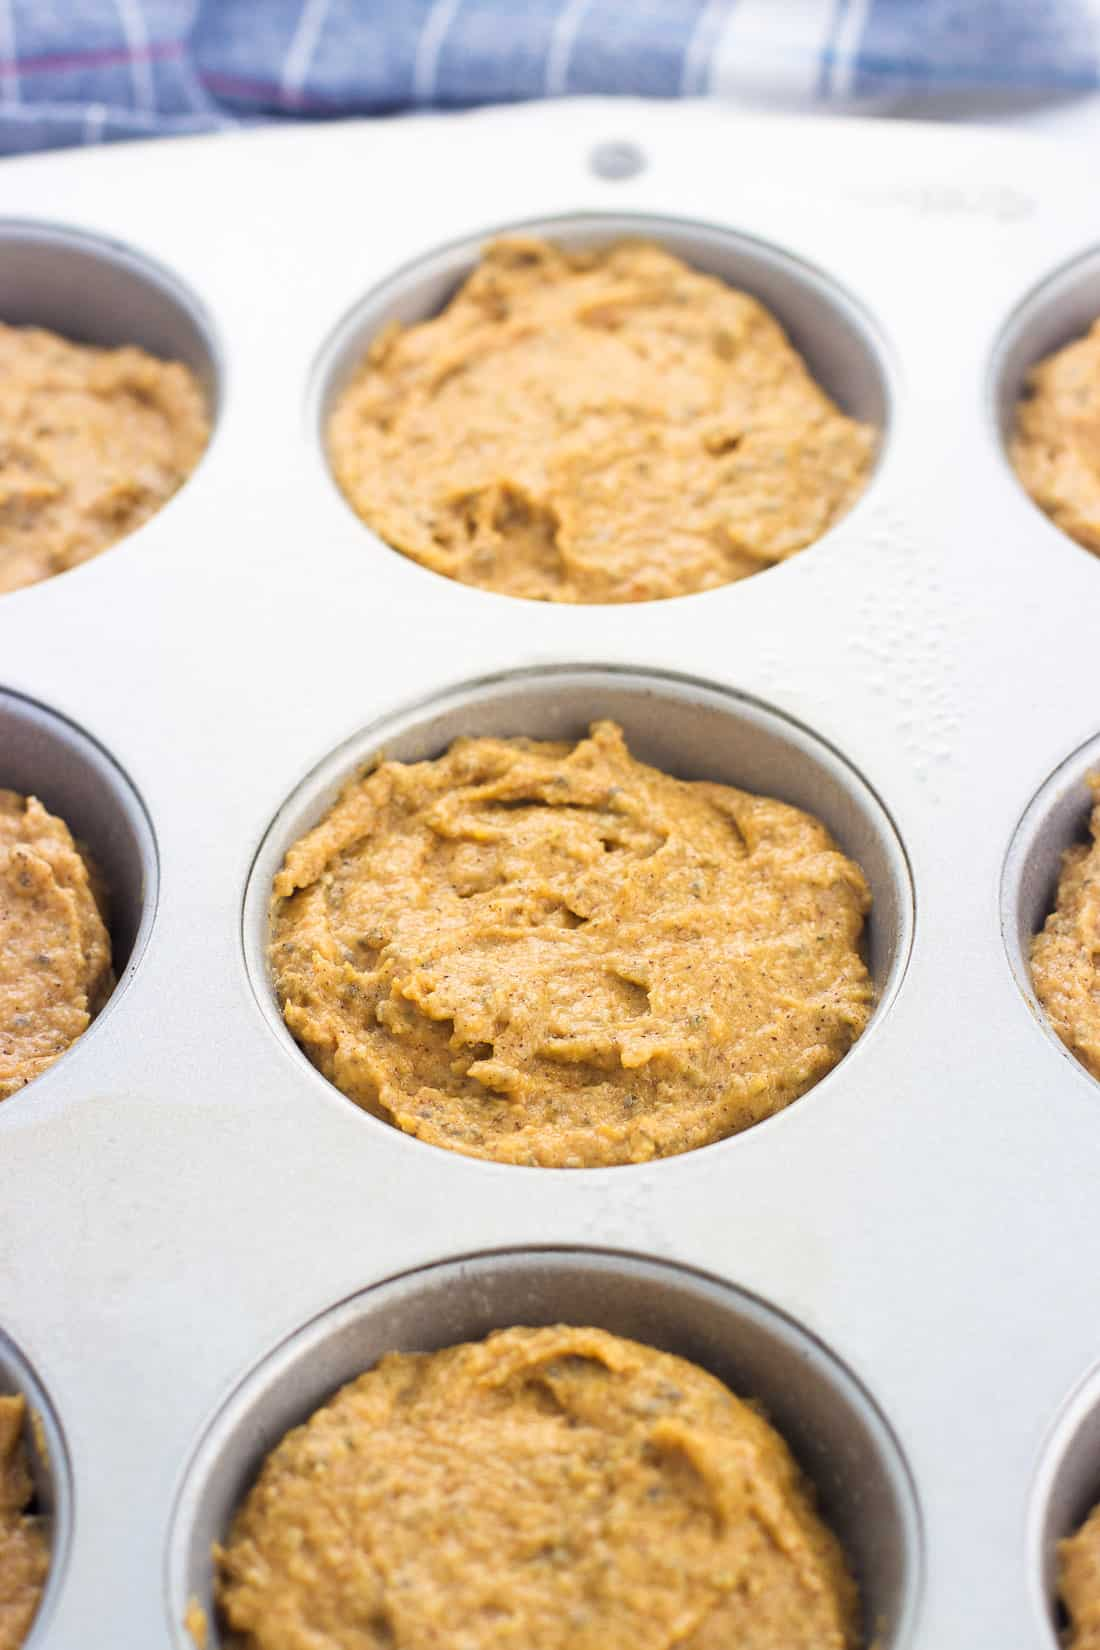 Unbaked pumpkin muffin batter portioned out in a metal muffin tin